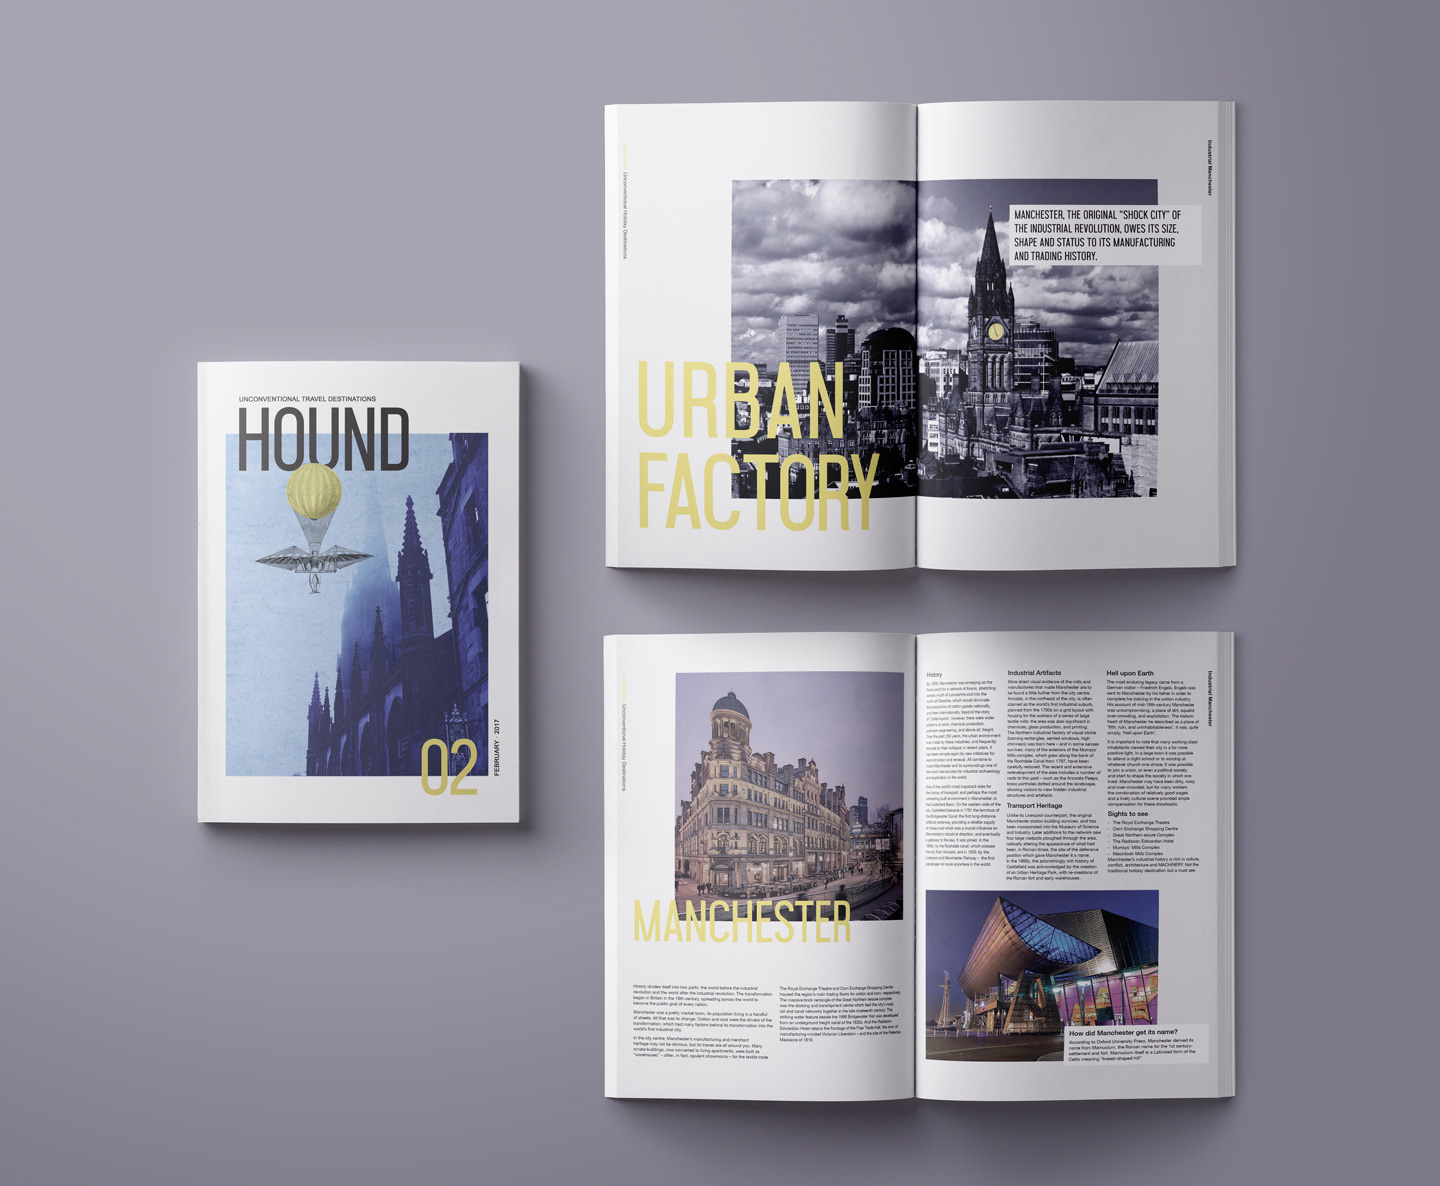 Magazine Cover Design And Spreads Layouts For Unconventional Destinations Travel Guide